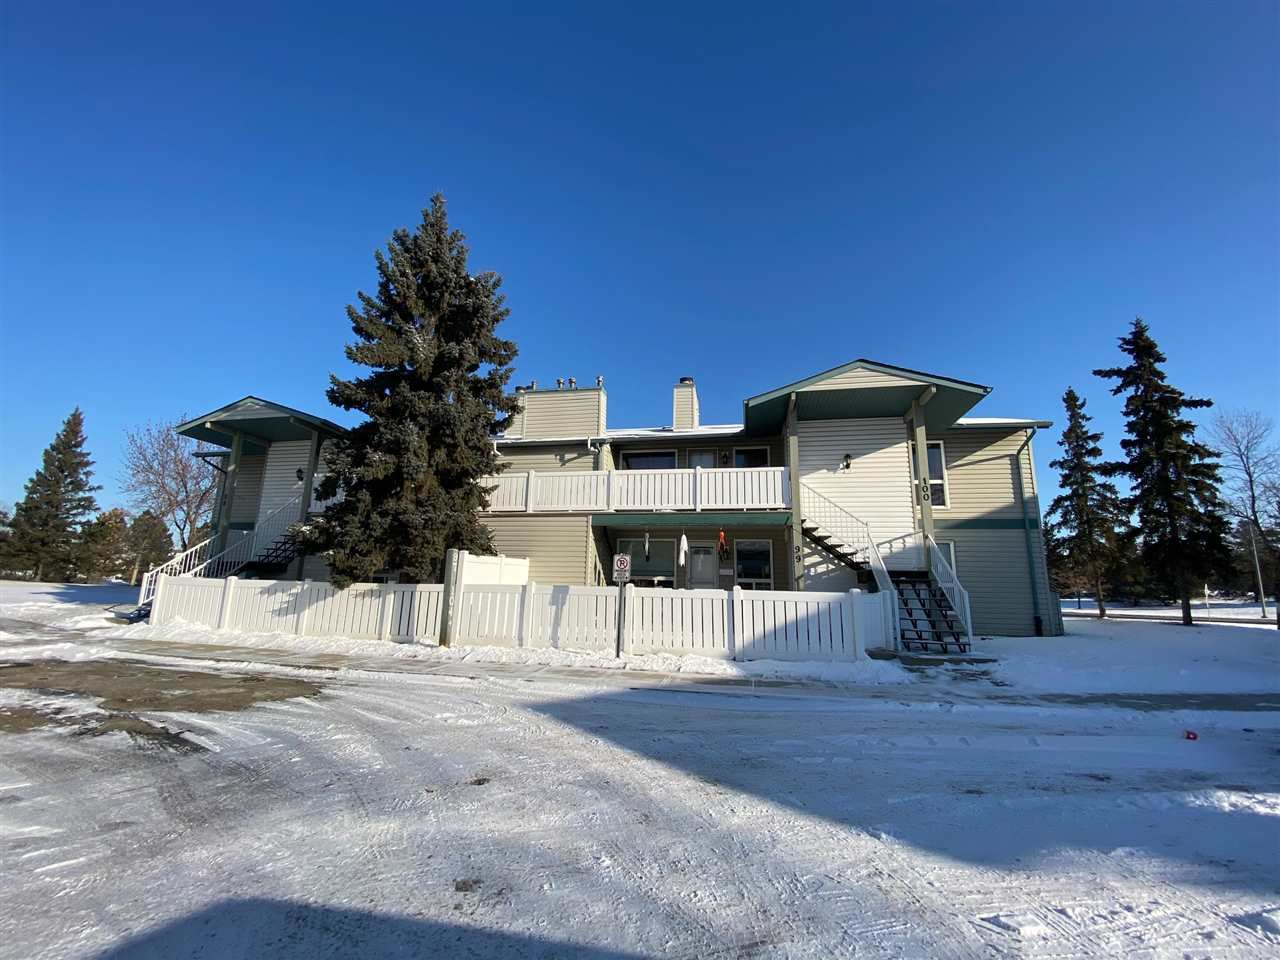 Main Photo: 97 2703 79 Street in Edmonton: Zone 29 Carriage for sale : MLS®# E4179596